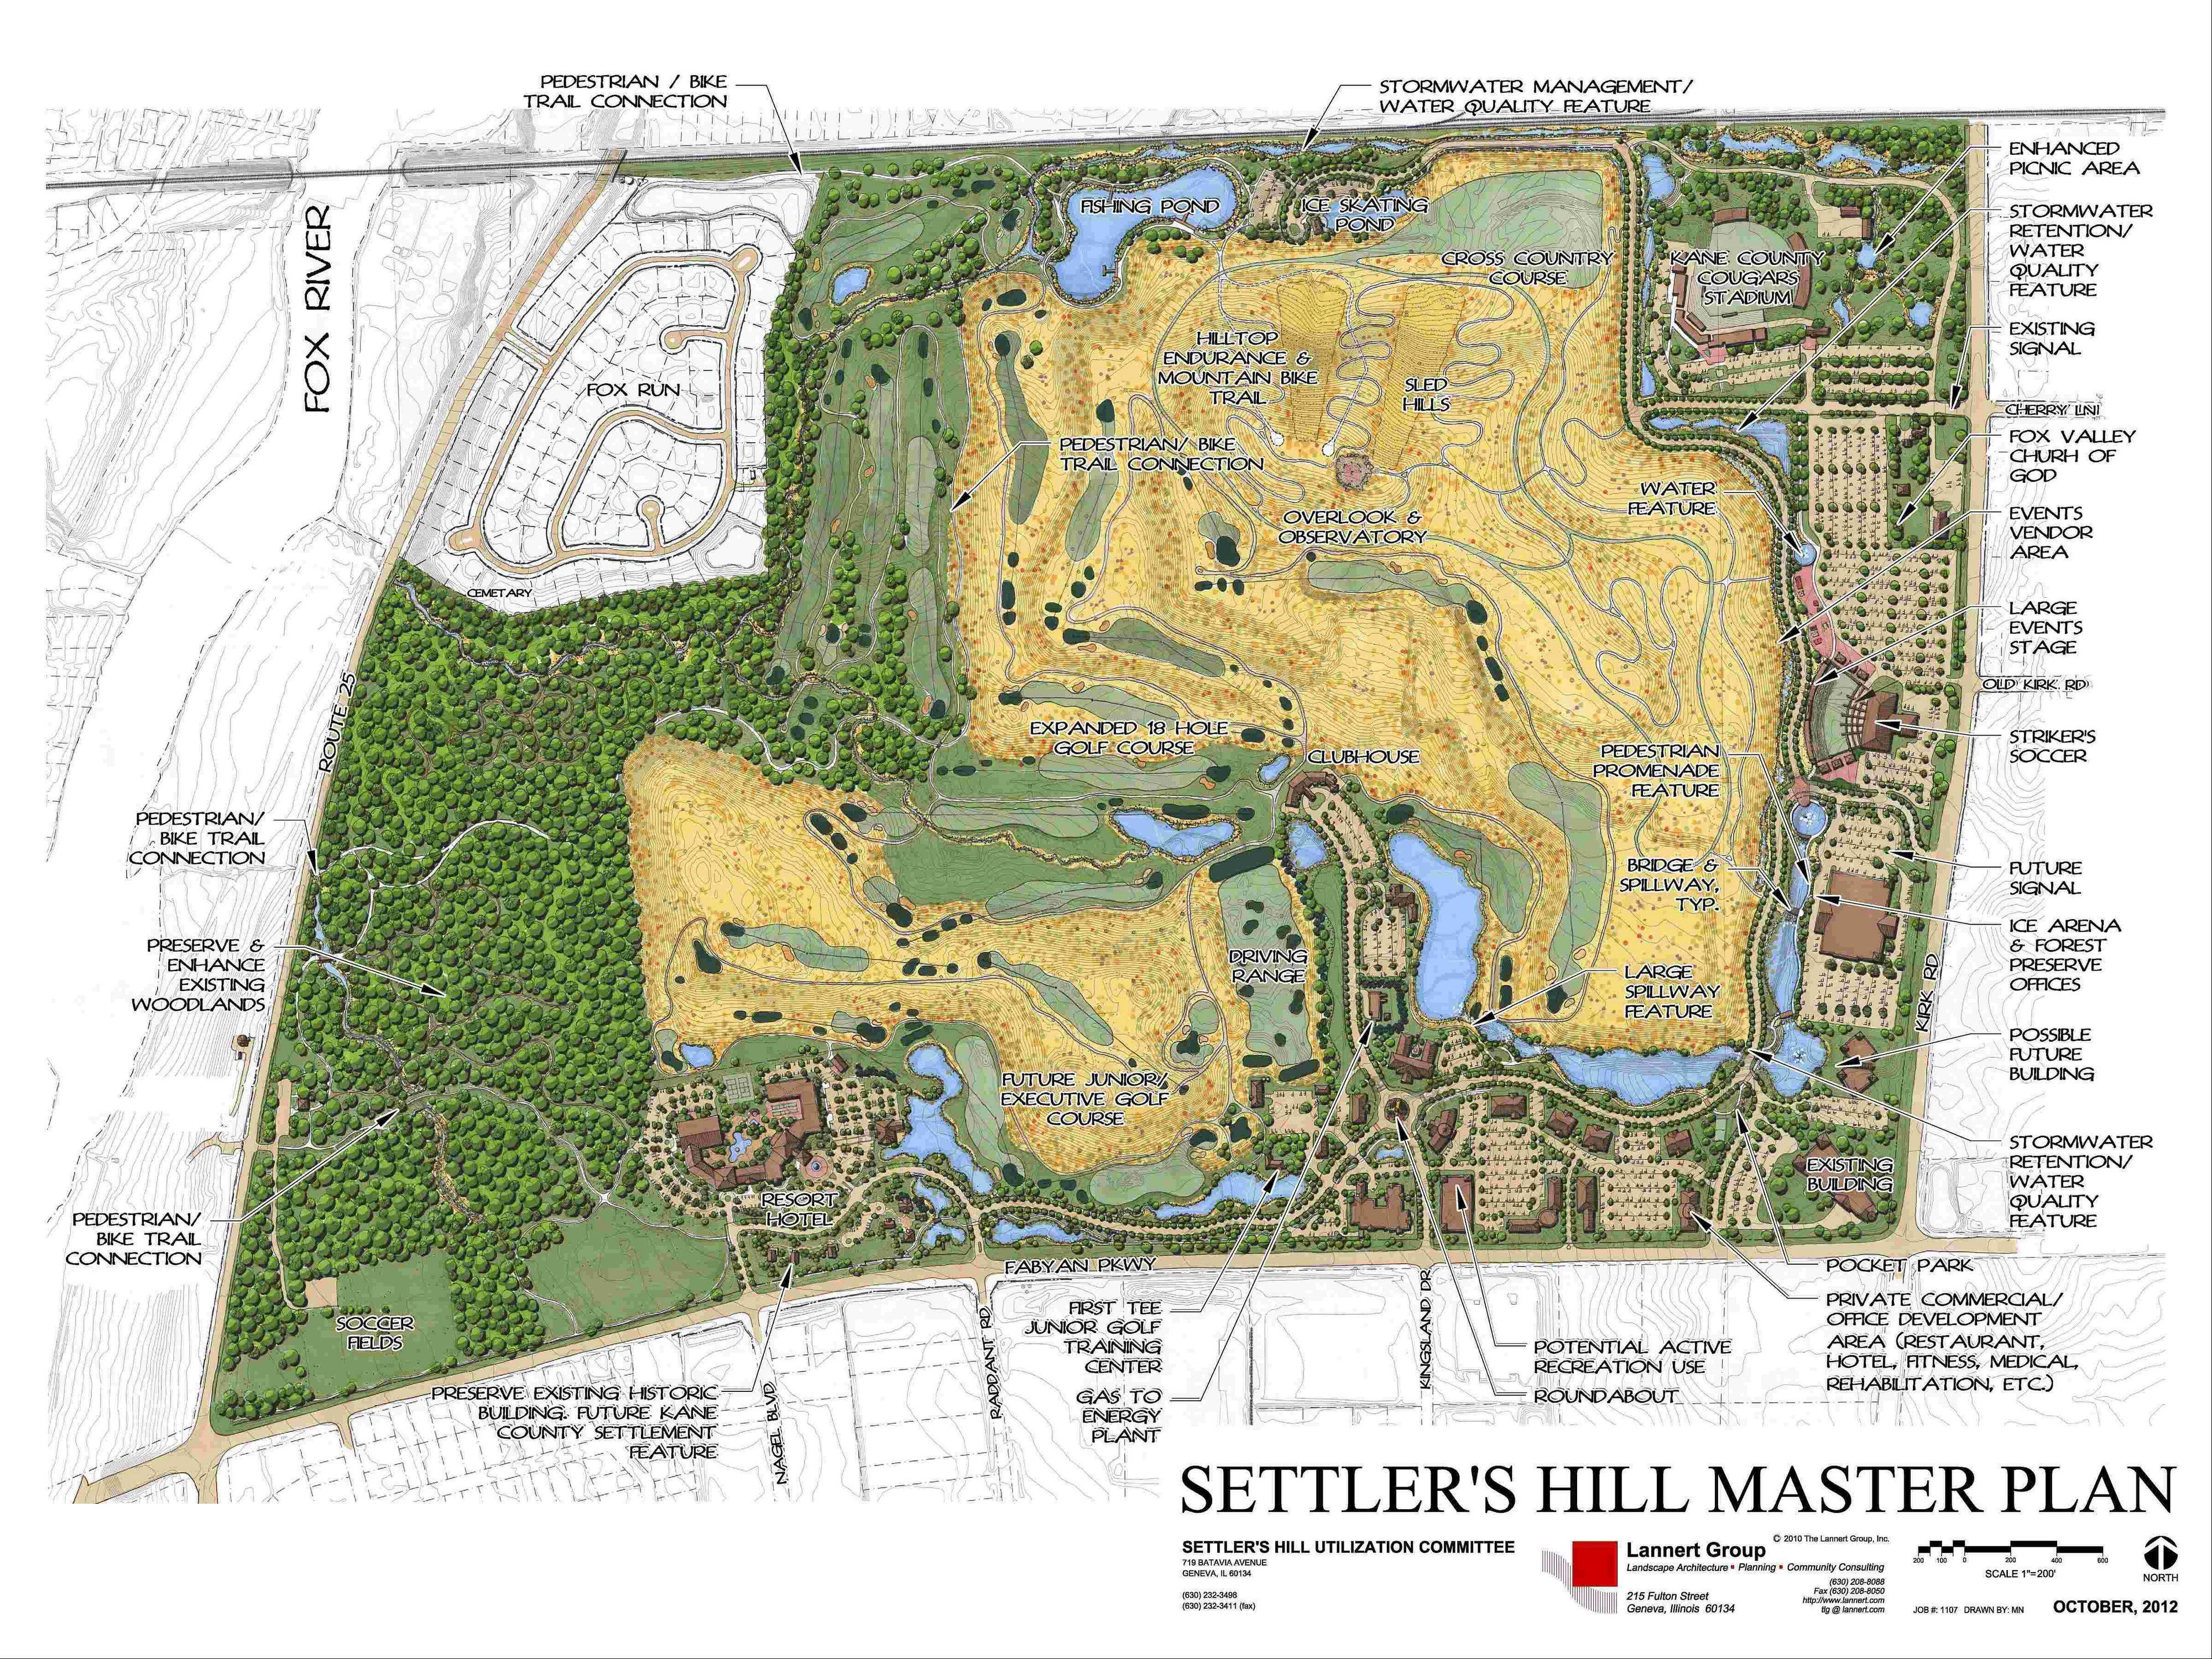 The proposed redevelopment of the former Settler's Hill landfill would occur in 11 phases. A study of the costs and potential revenues is still pending, but county officials say they're eager to move the work forward.